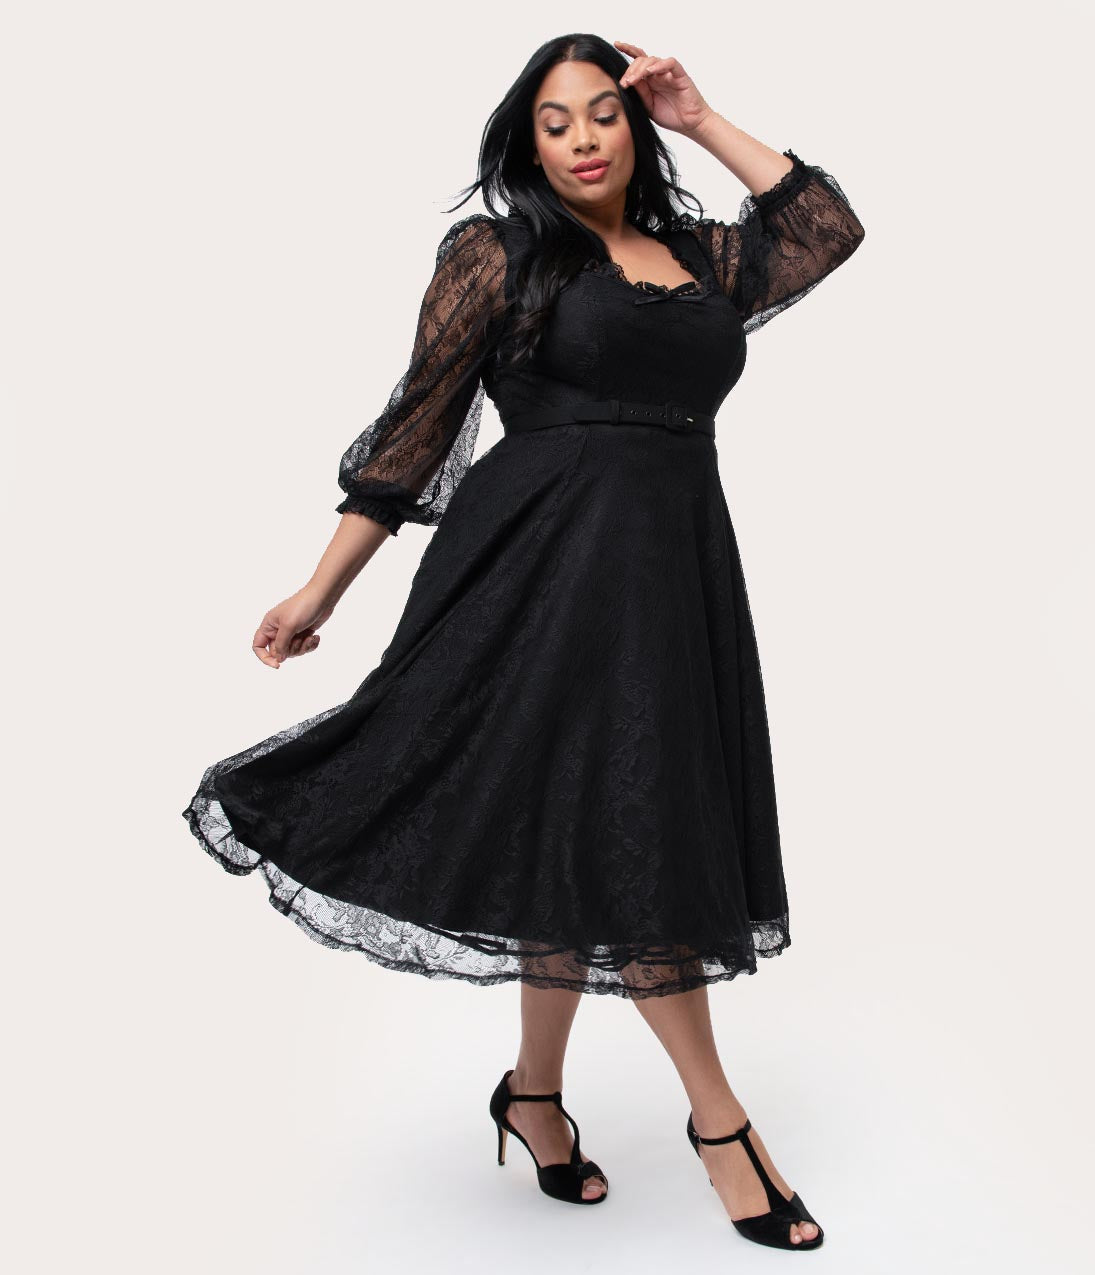 1940s Dresses | 40s Dress, Swing Dress Vixen By Micheline Pitt Plus Size Black Lace Decadence Swing Dress $140.00 AT vintagedancer.com